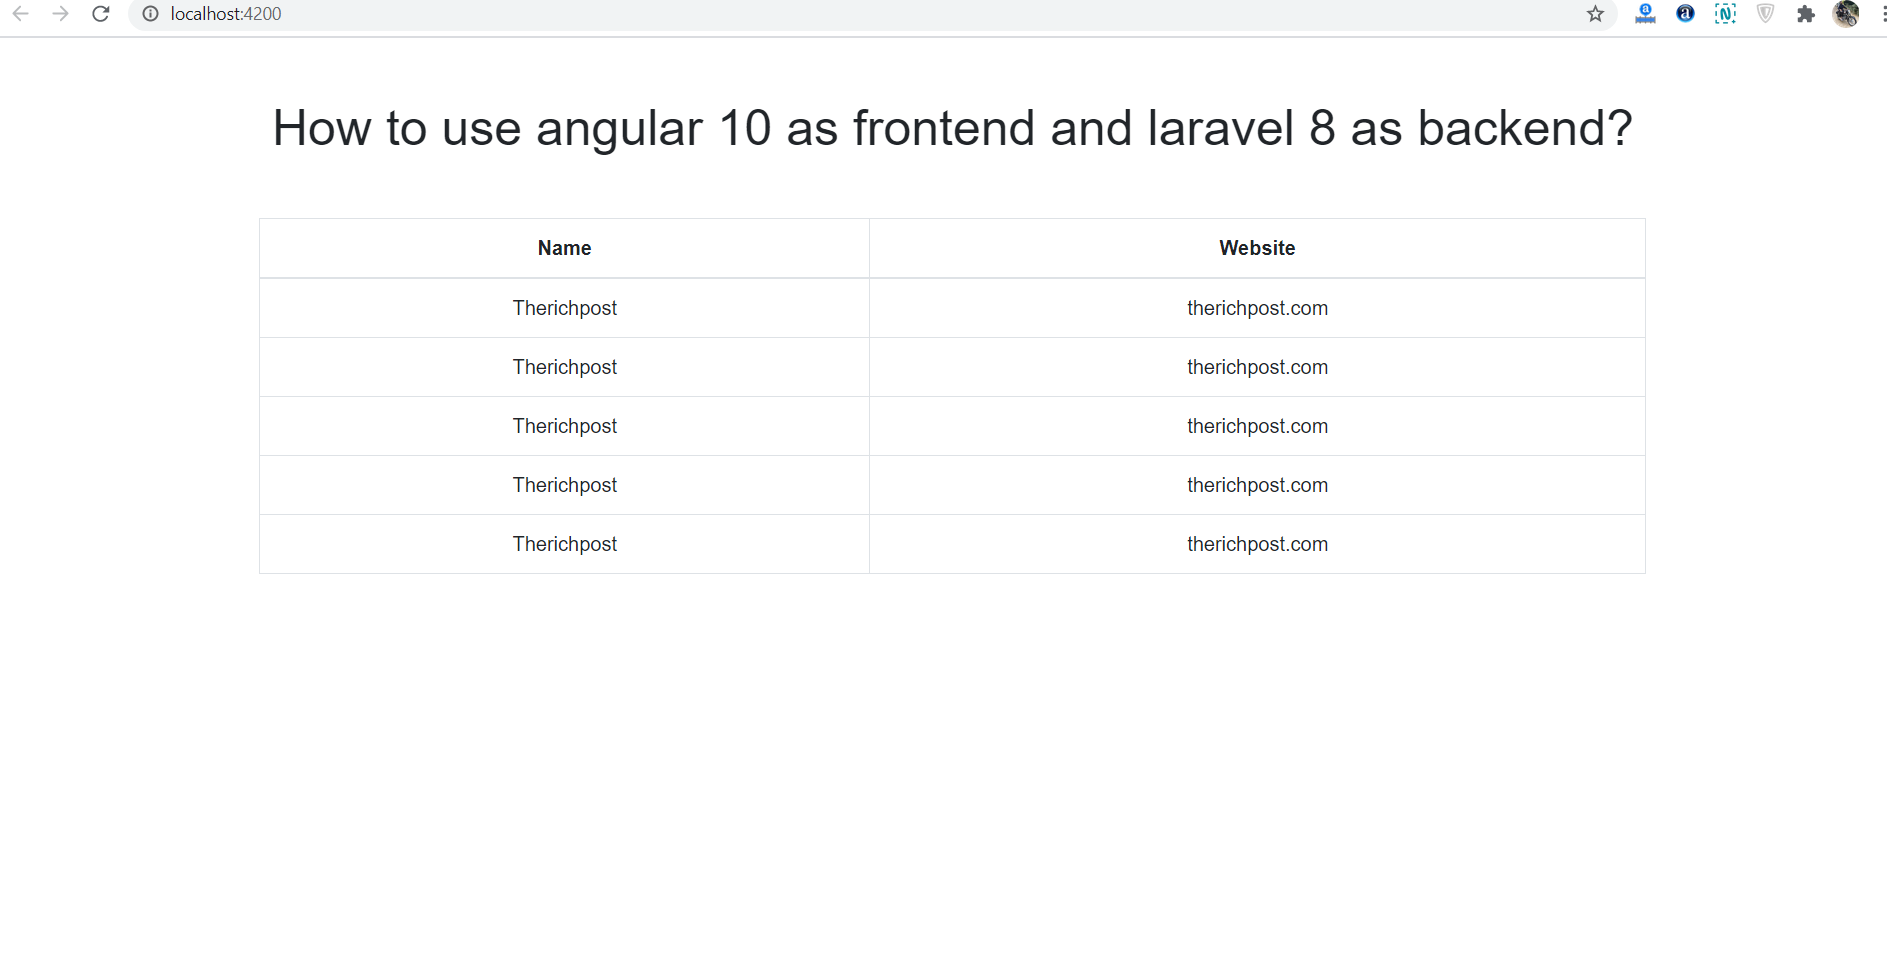 How to use angular 10 as frontend and laravel 8 as backend?